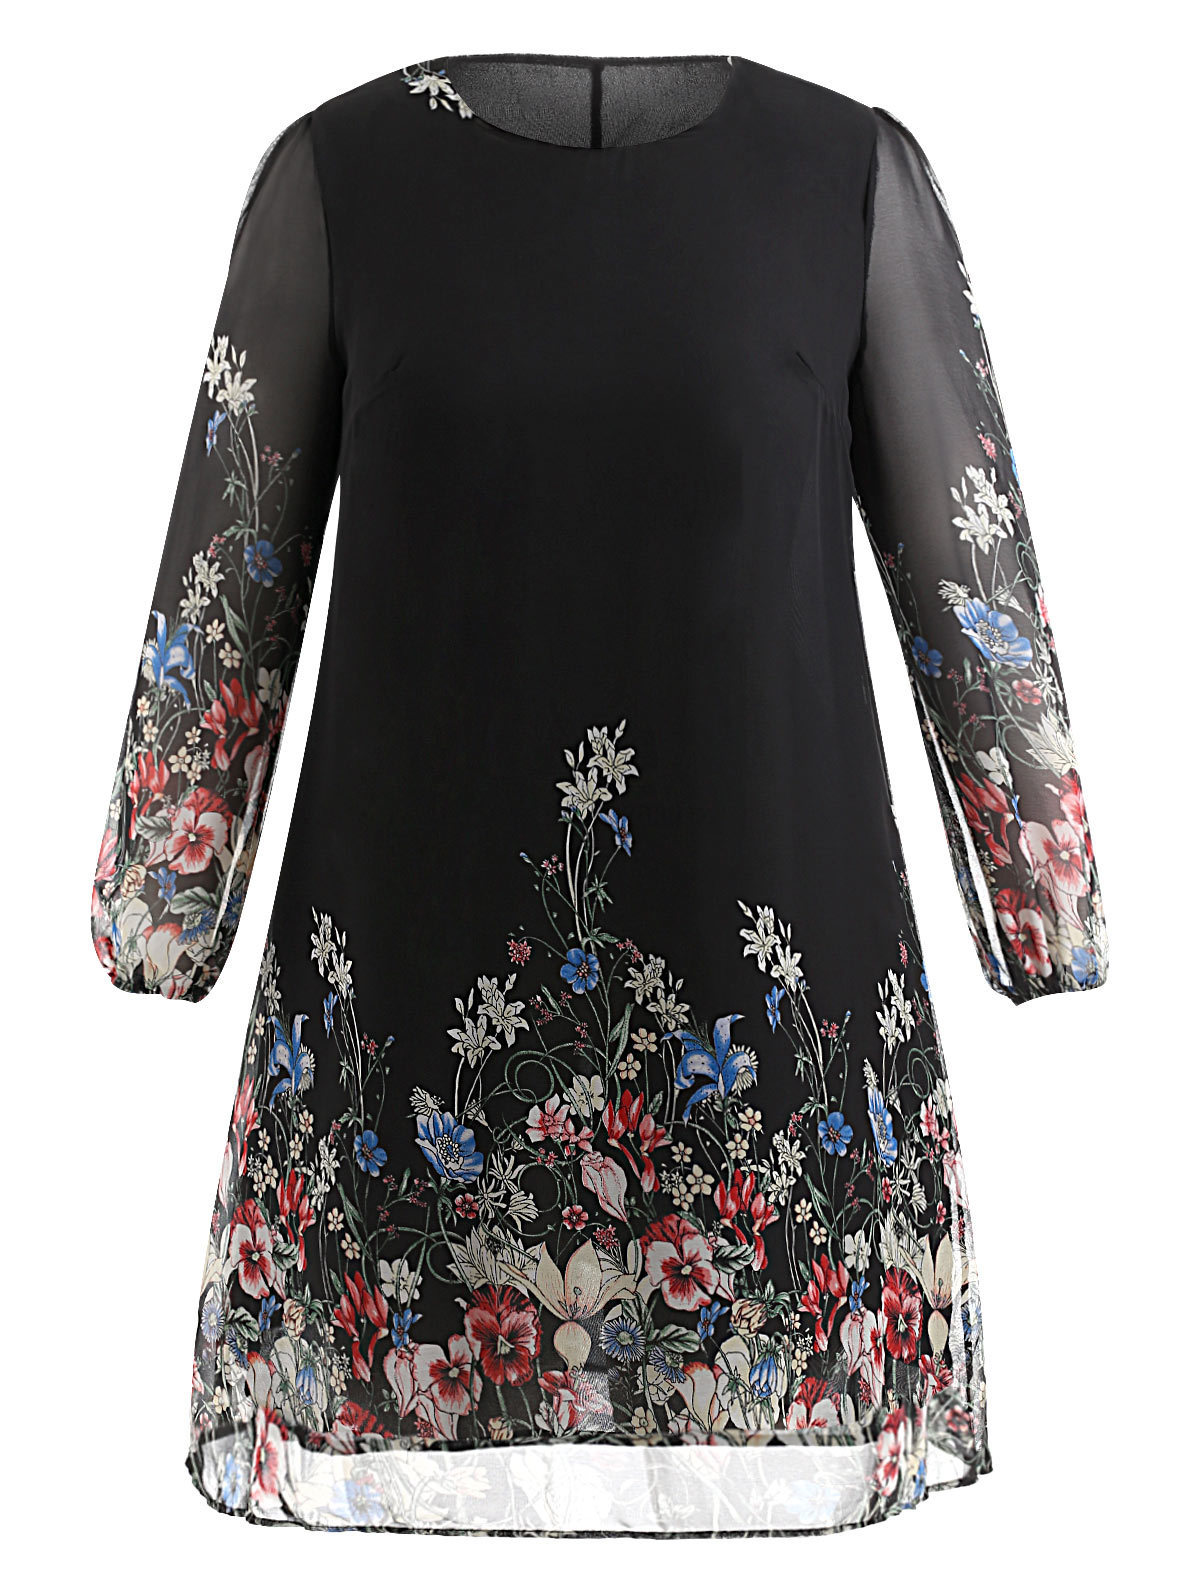 Wipalo Multi Color Plus Size Floral Embroidery Tunica Dress Spring Elegant Tribal Flower Printing Occupation Dress Vestidos Y19071001